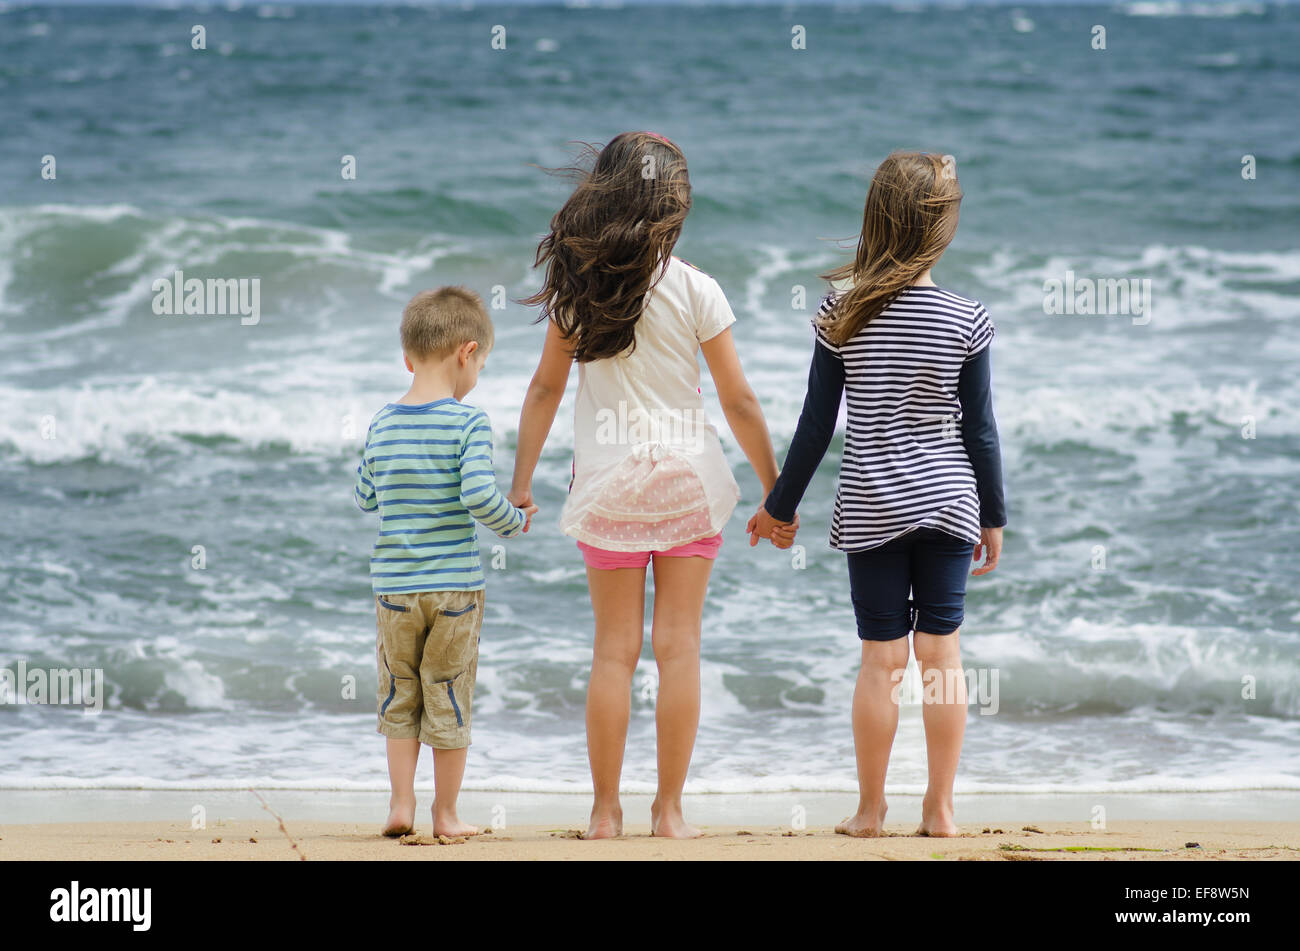 Bulgaria, Two girls (8-9) and boy (4-5) standing at by surf line holding hands looking at sea - Stock Image